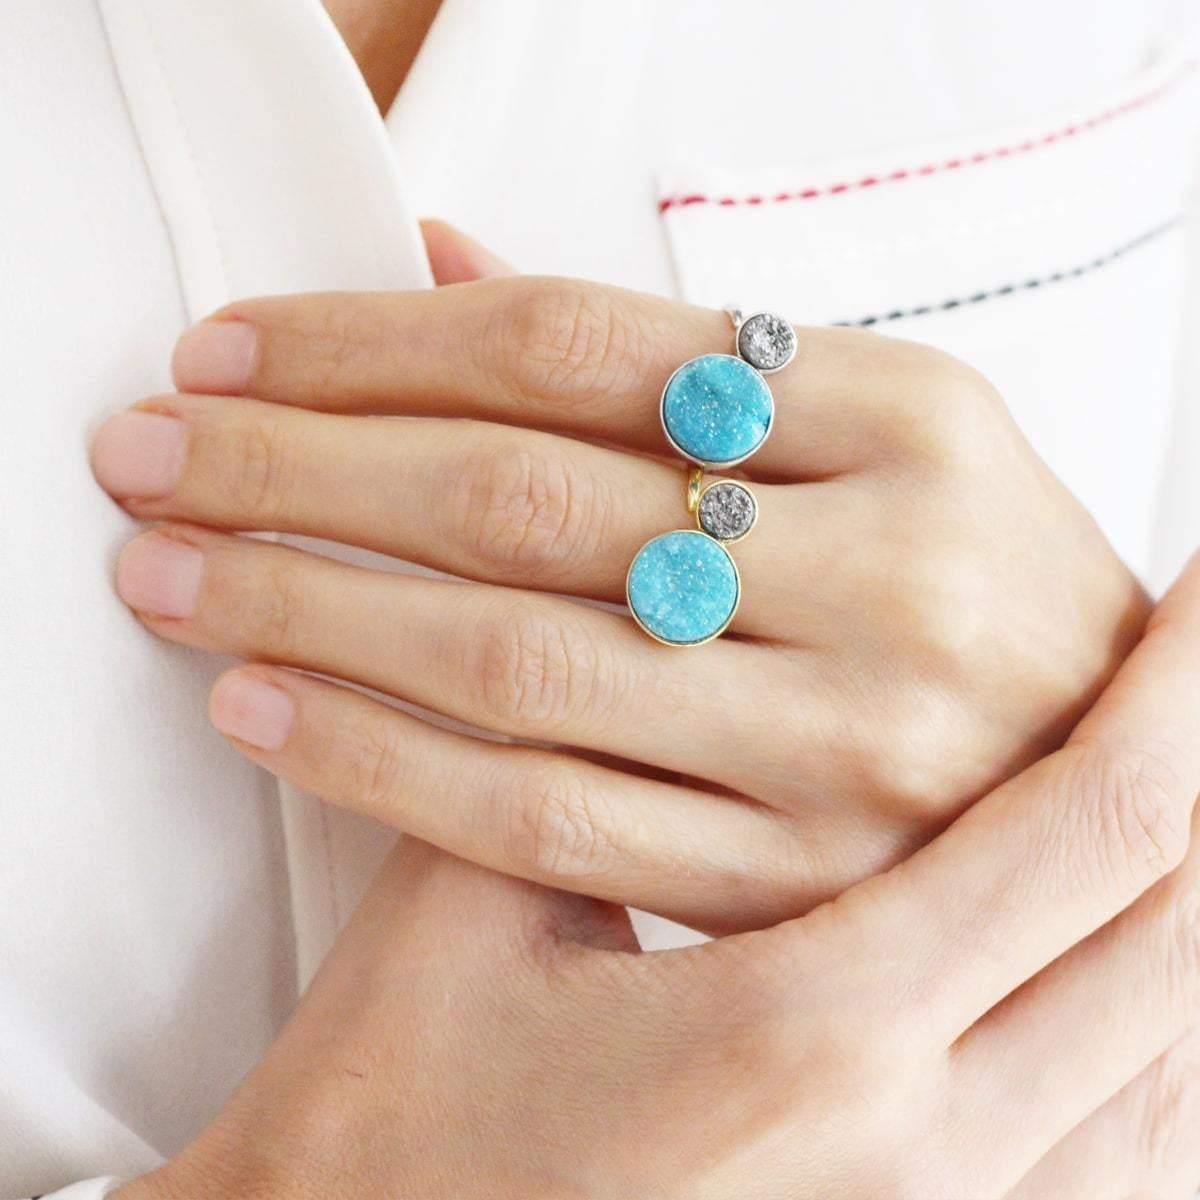 Alice Arctic Blue & Small Silver Moon Orbit Ring - Tanzire Store